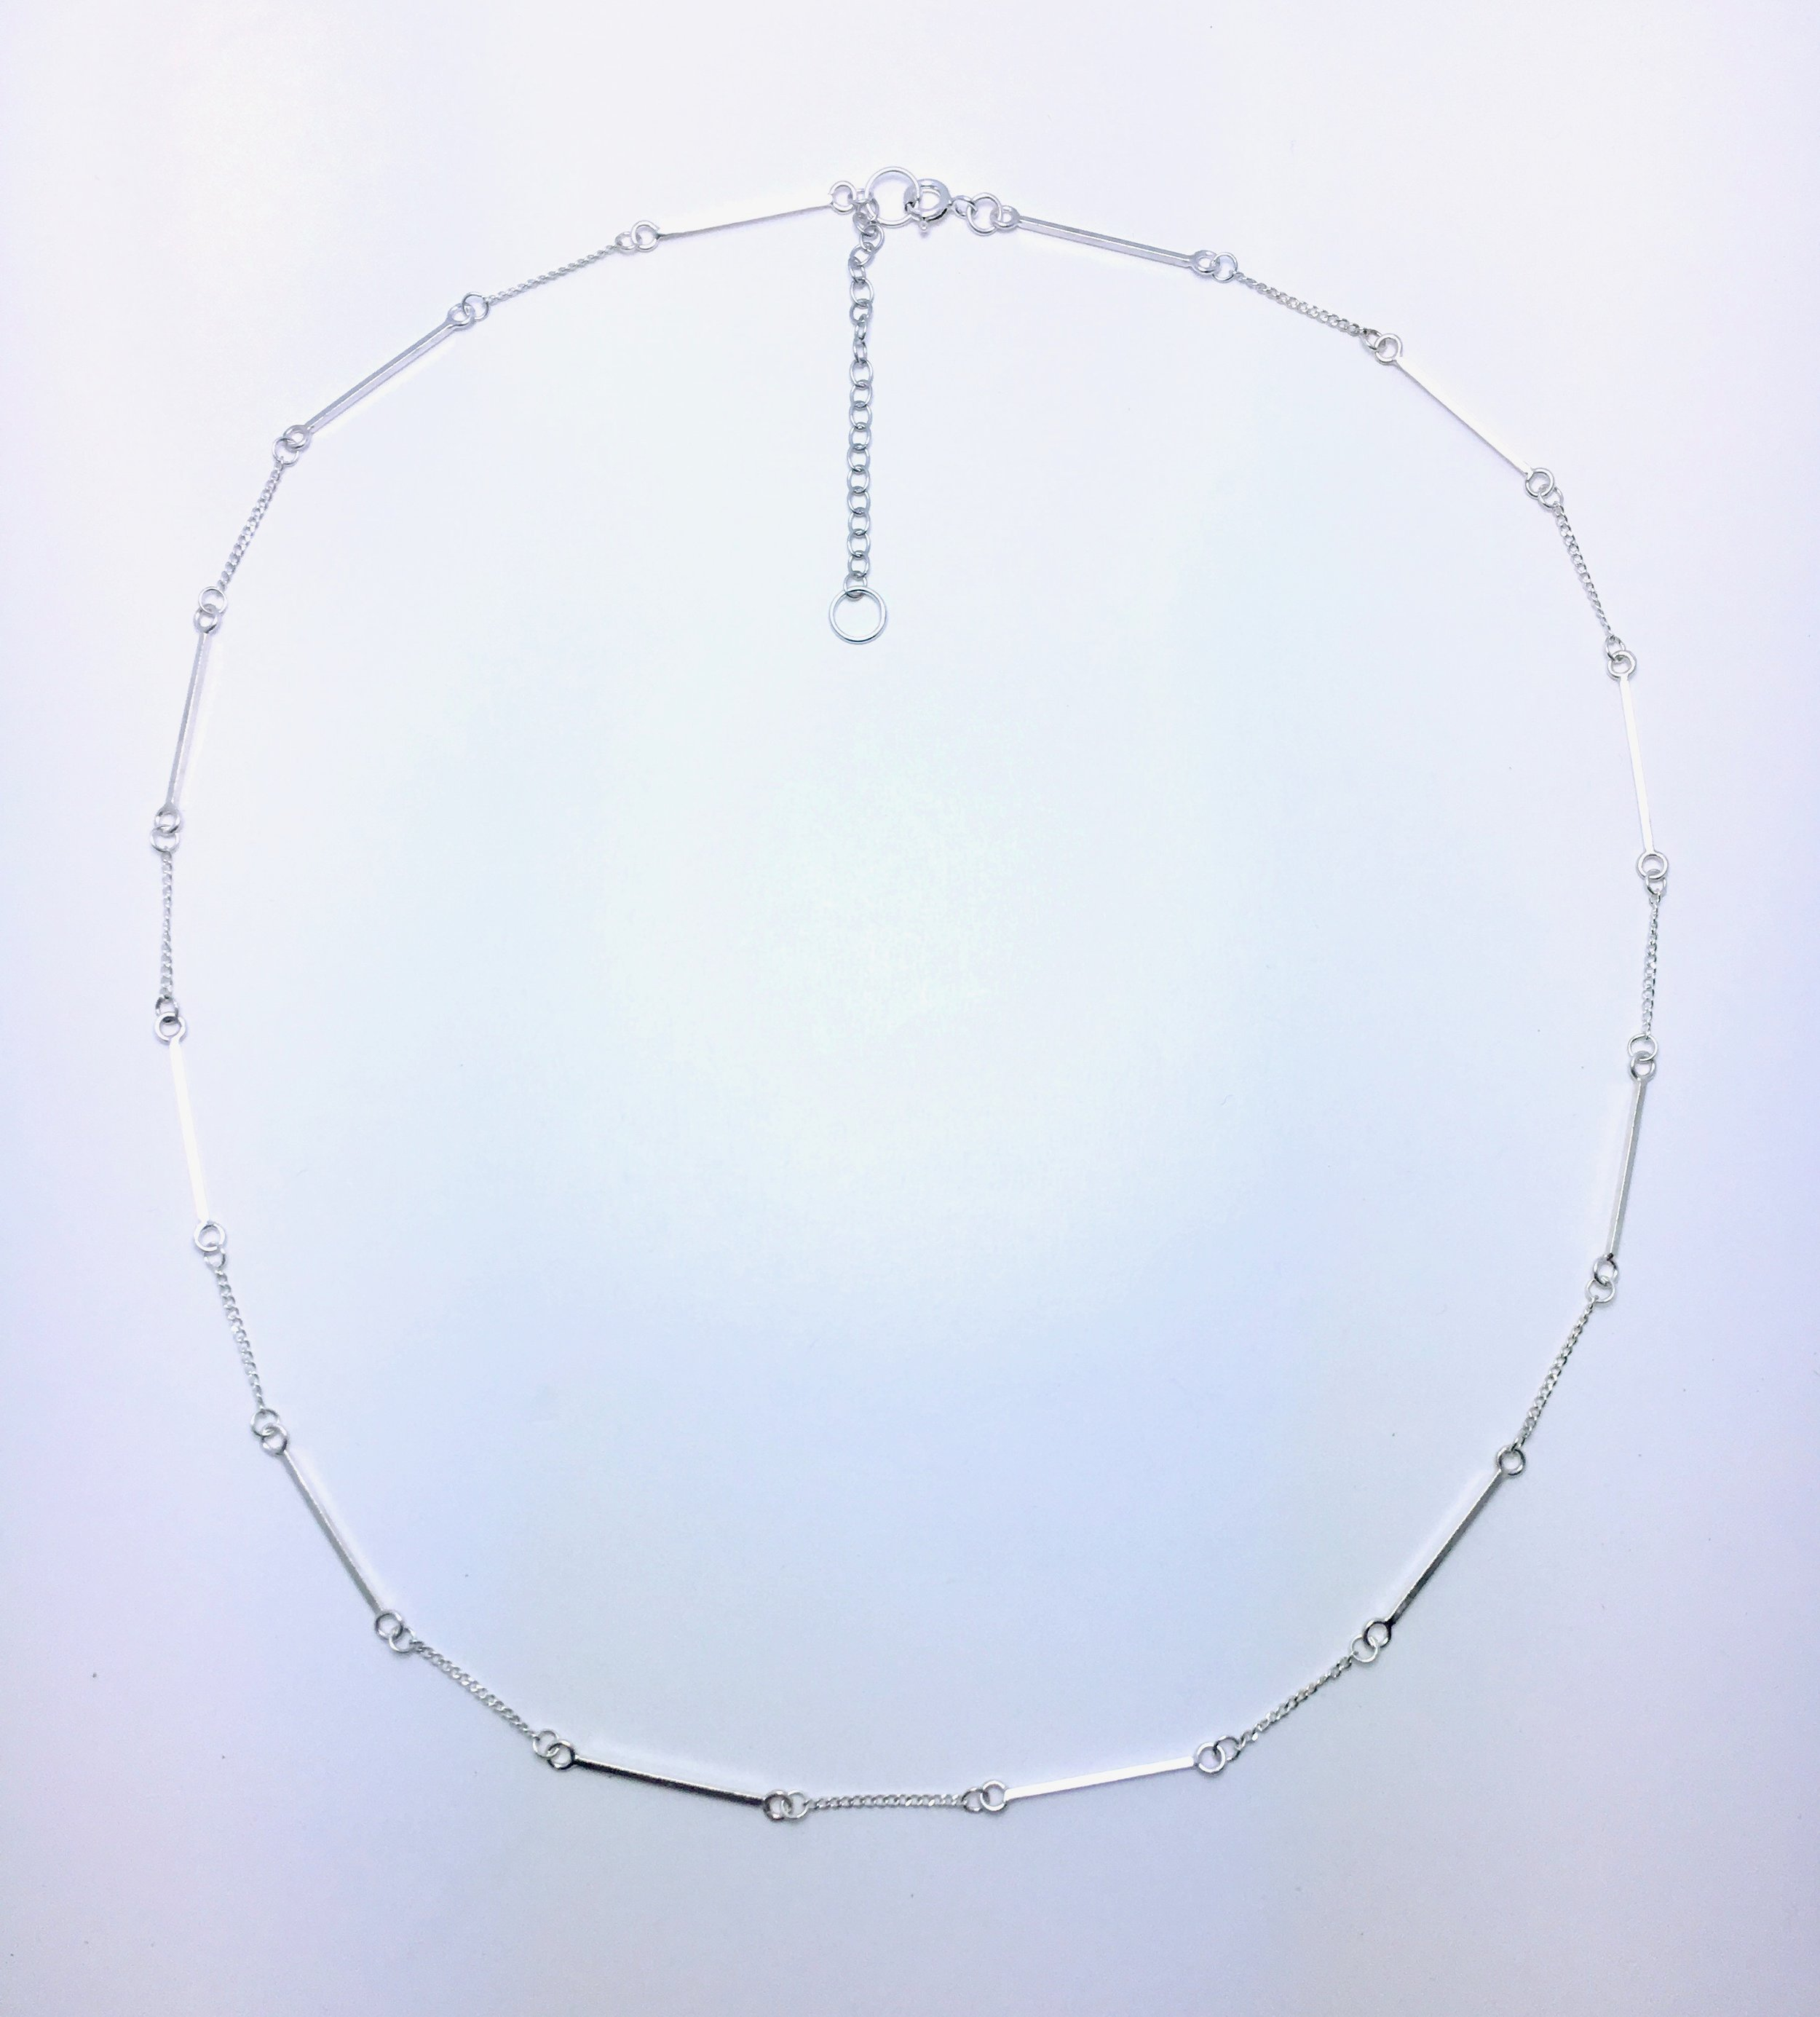 Sterling silver chain with square wire elements